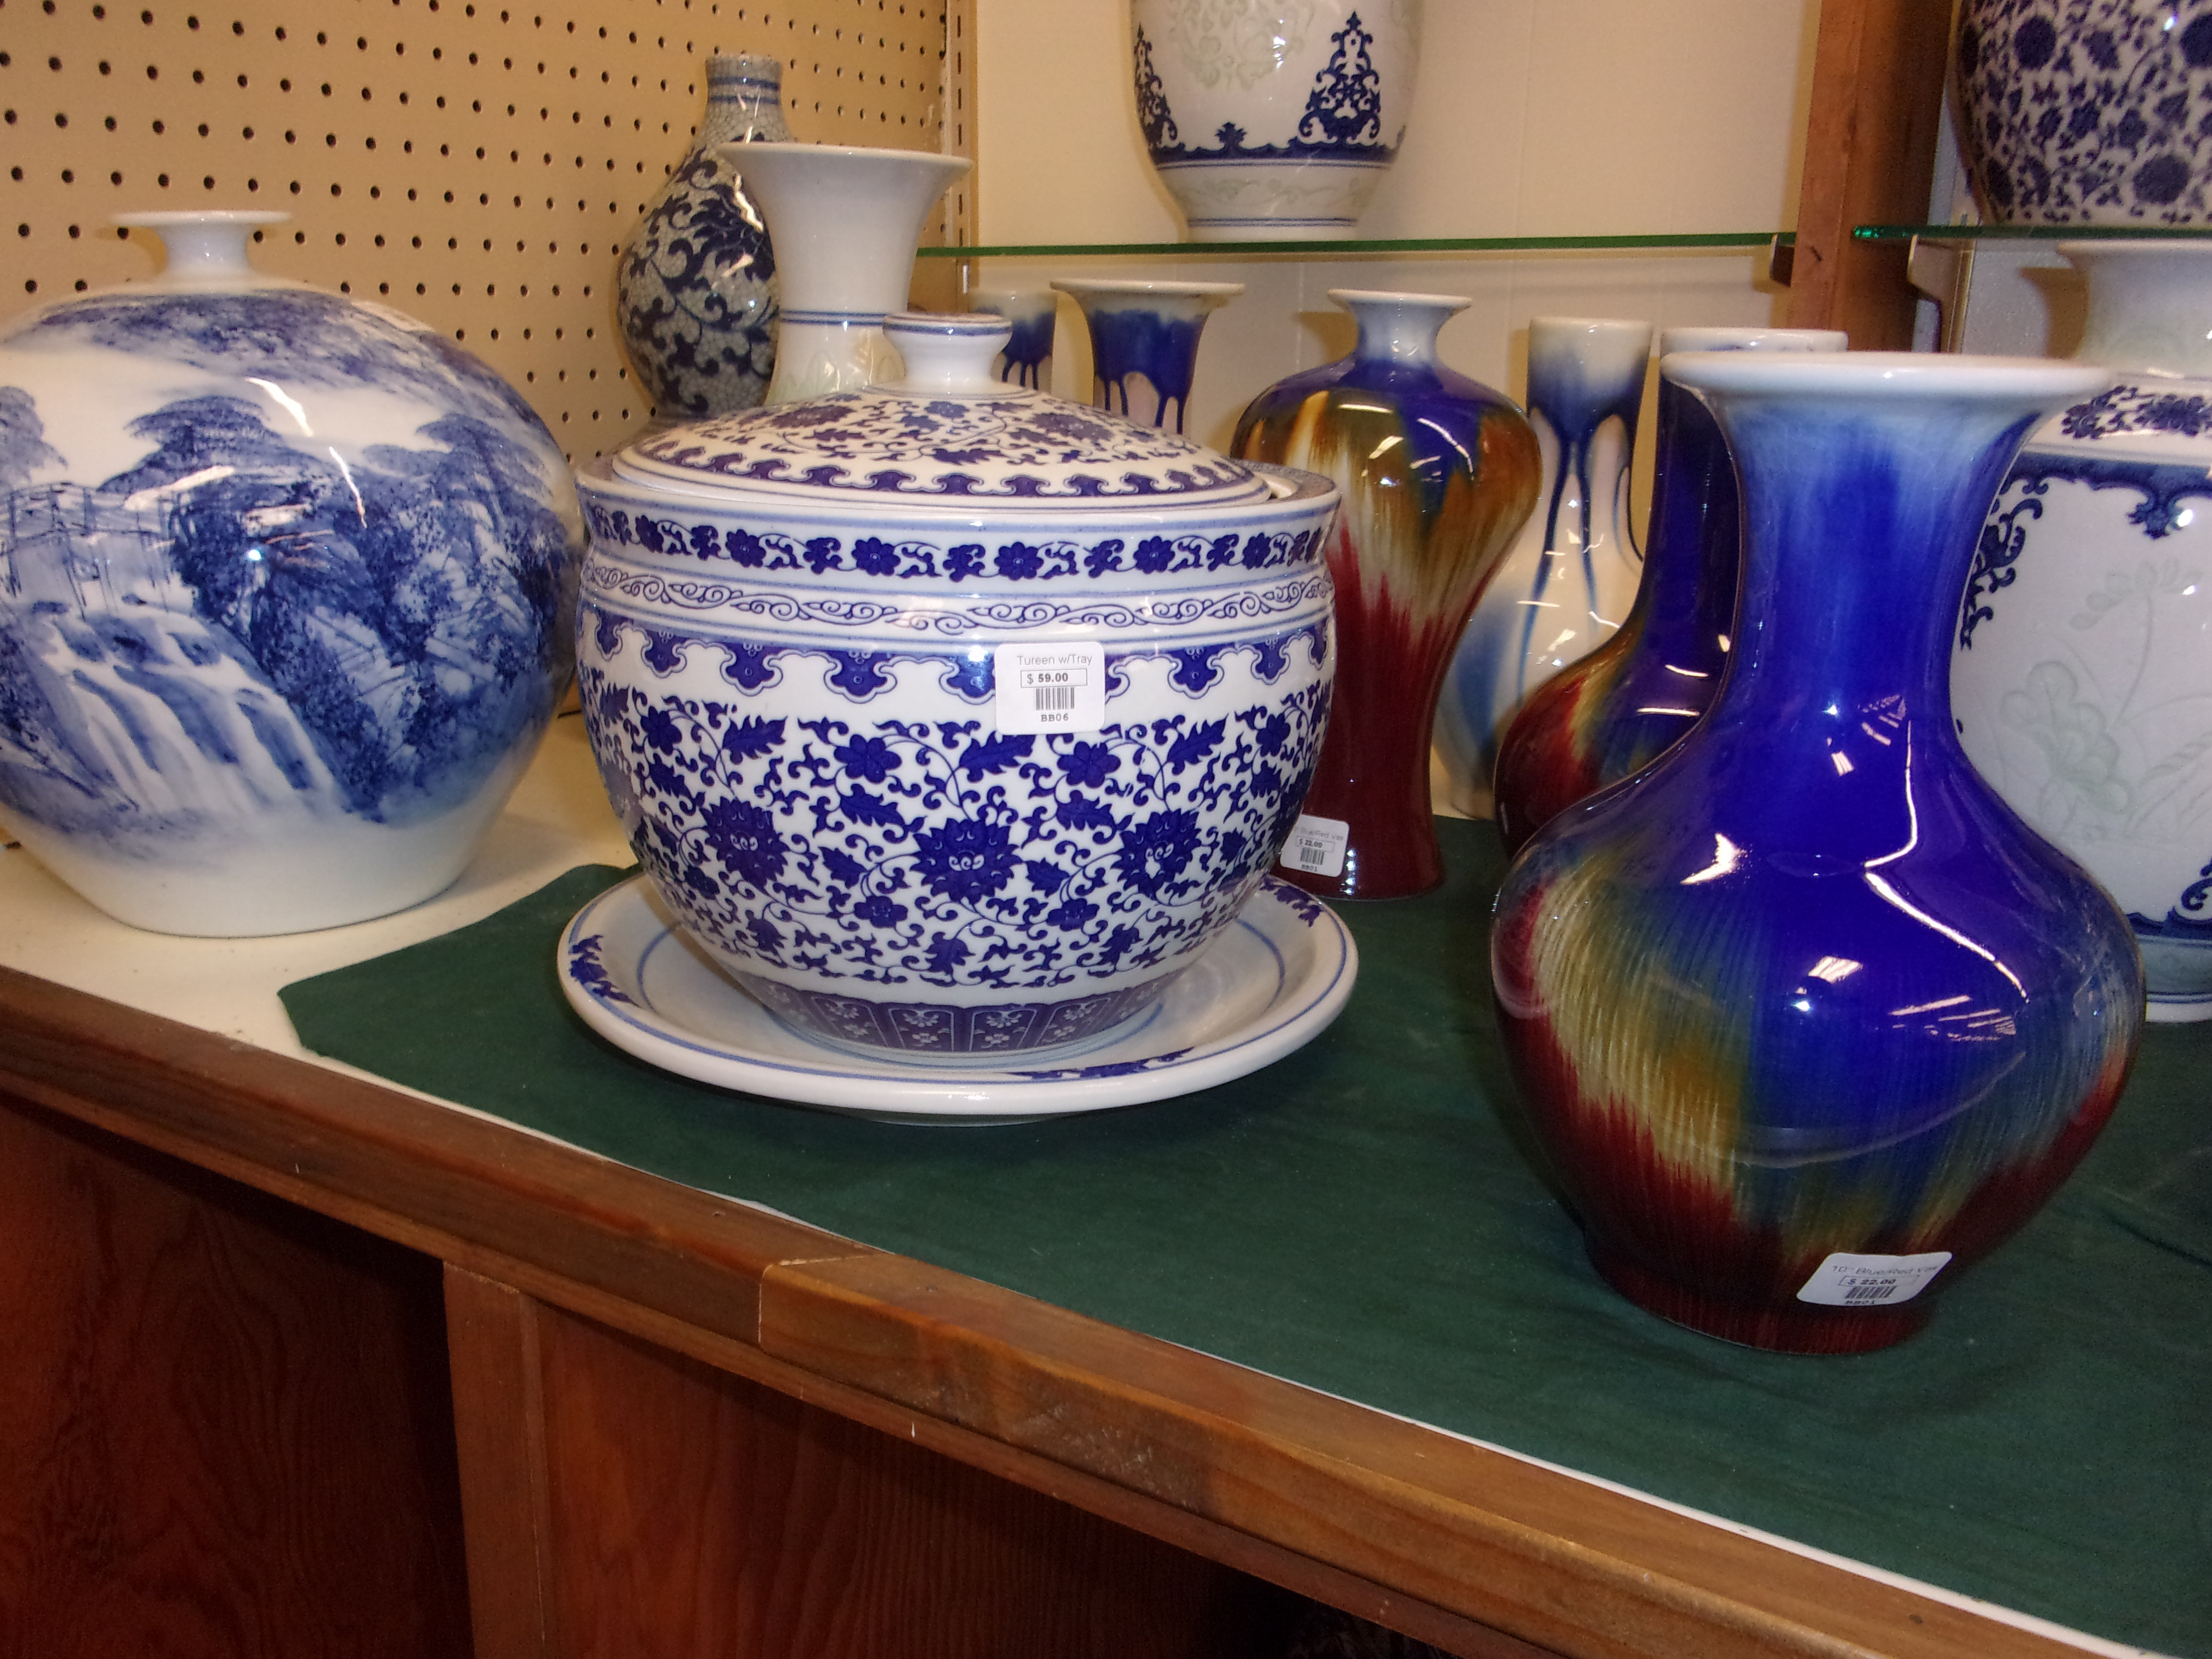 Pottery Craft Usa Vase Of Zanesville Pottery Your Exclusive Pottery Retailer for Items Selling now On Ebay A